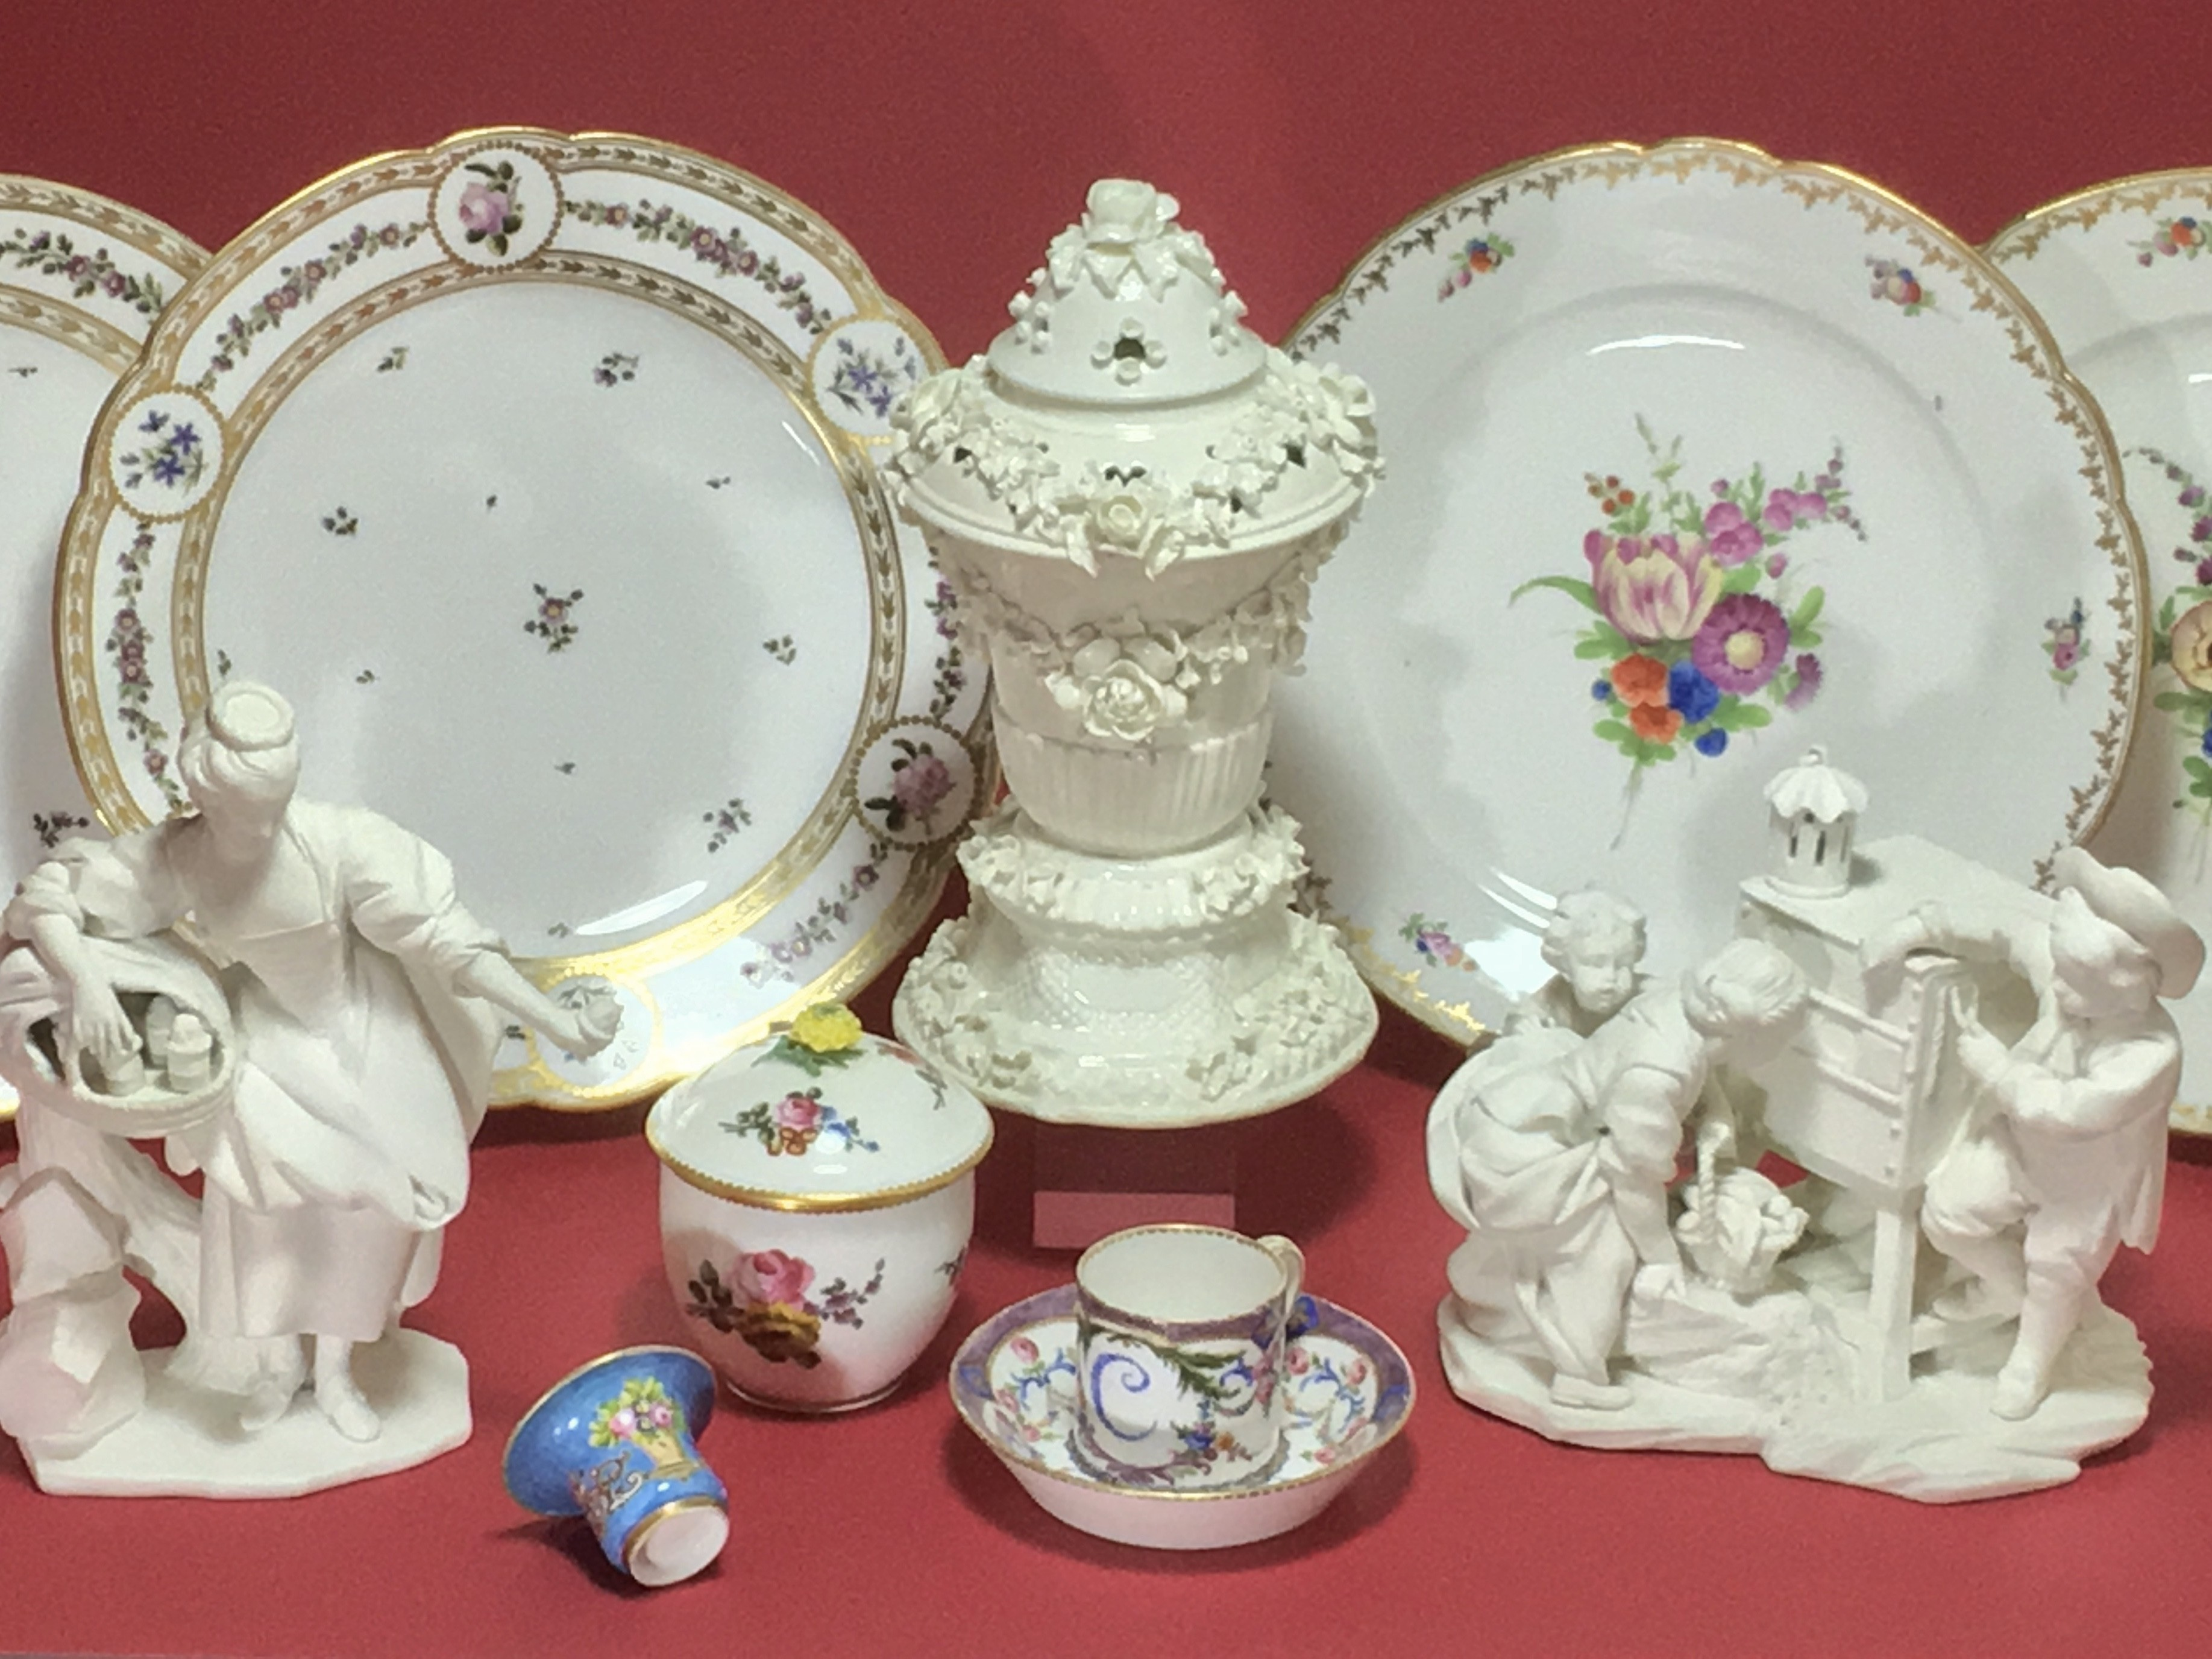 FRENCH PORCELAIN OF THE EIGHTEENTH CENTURY